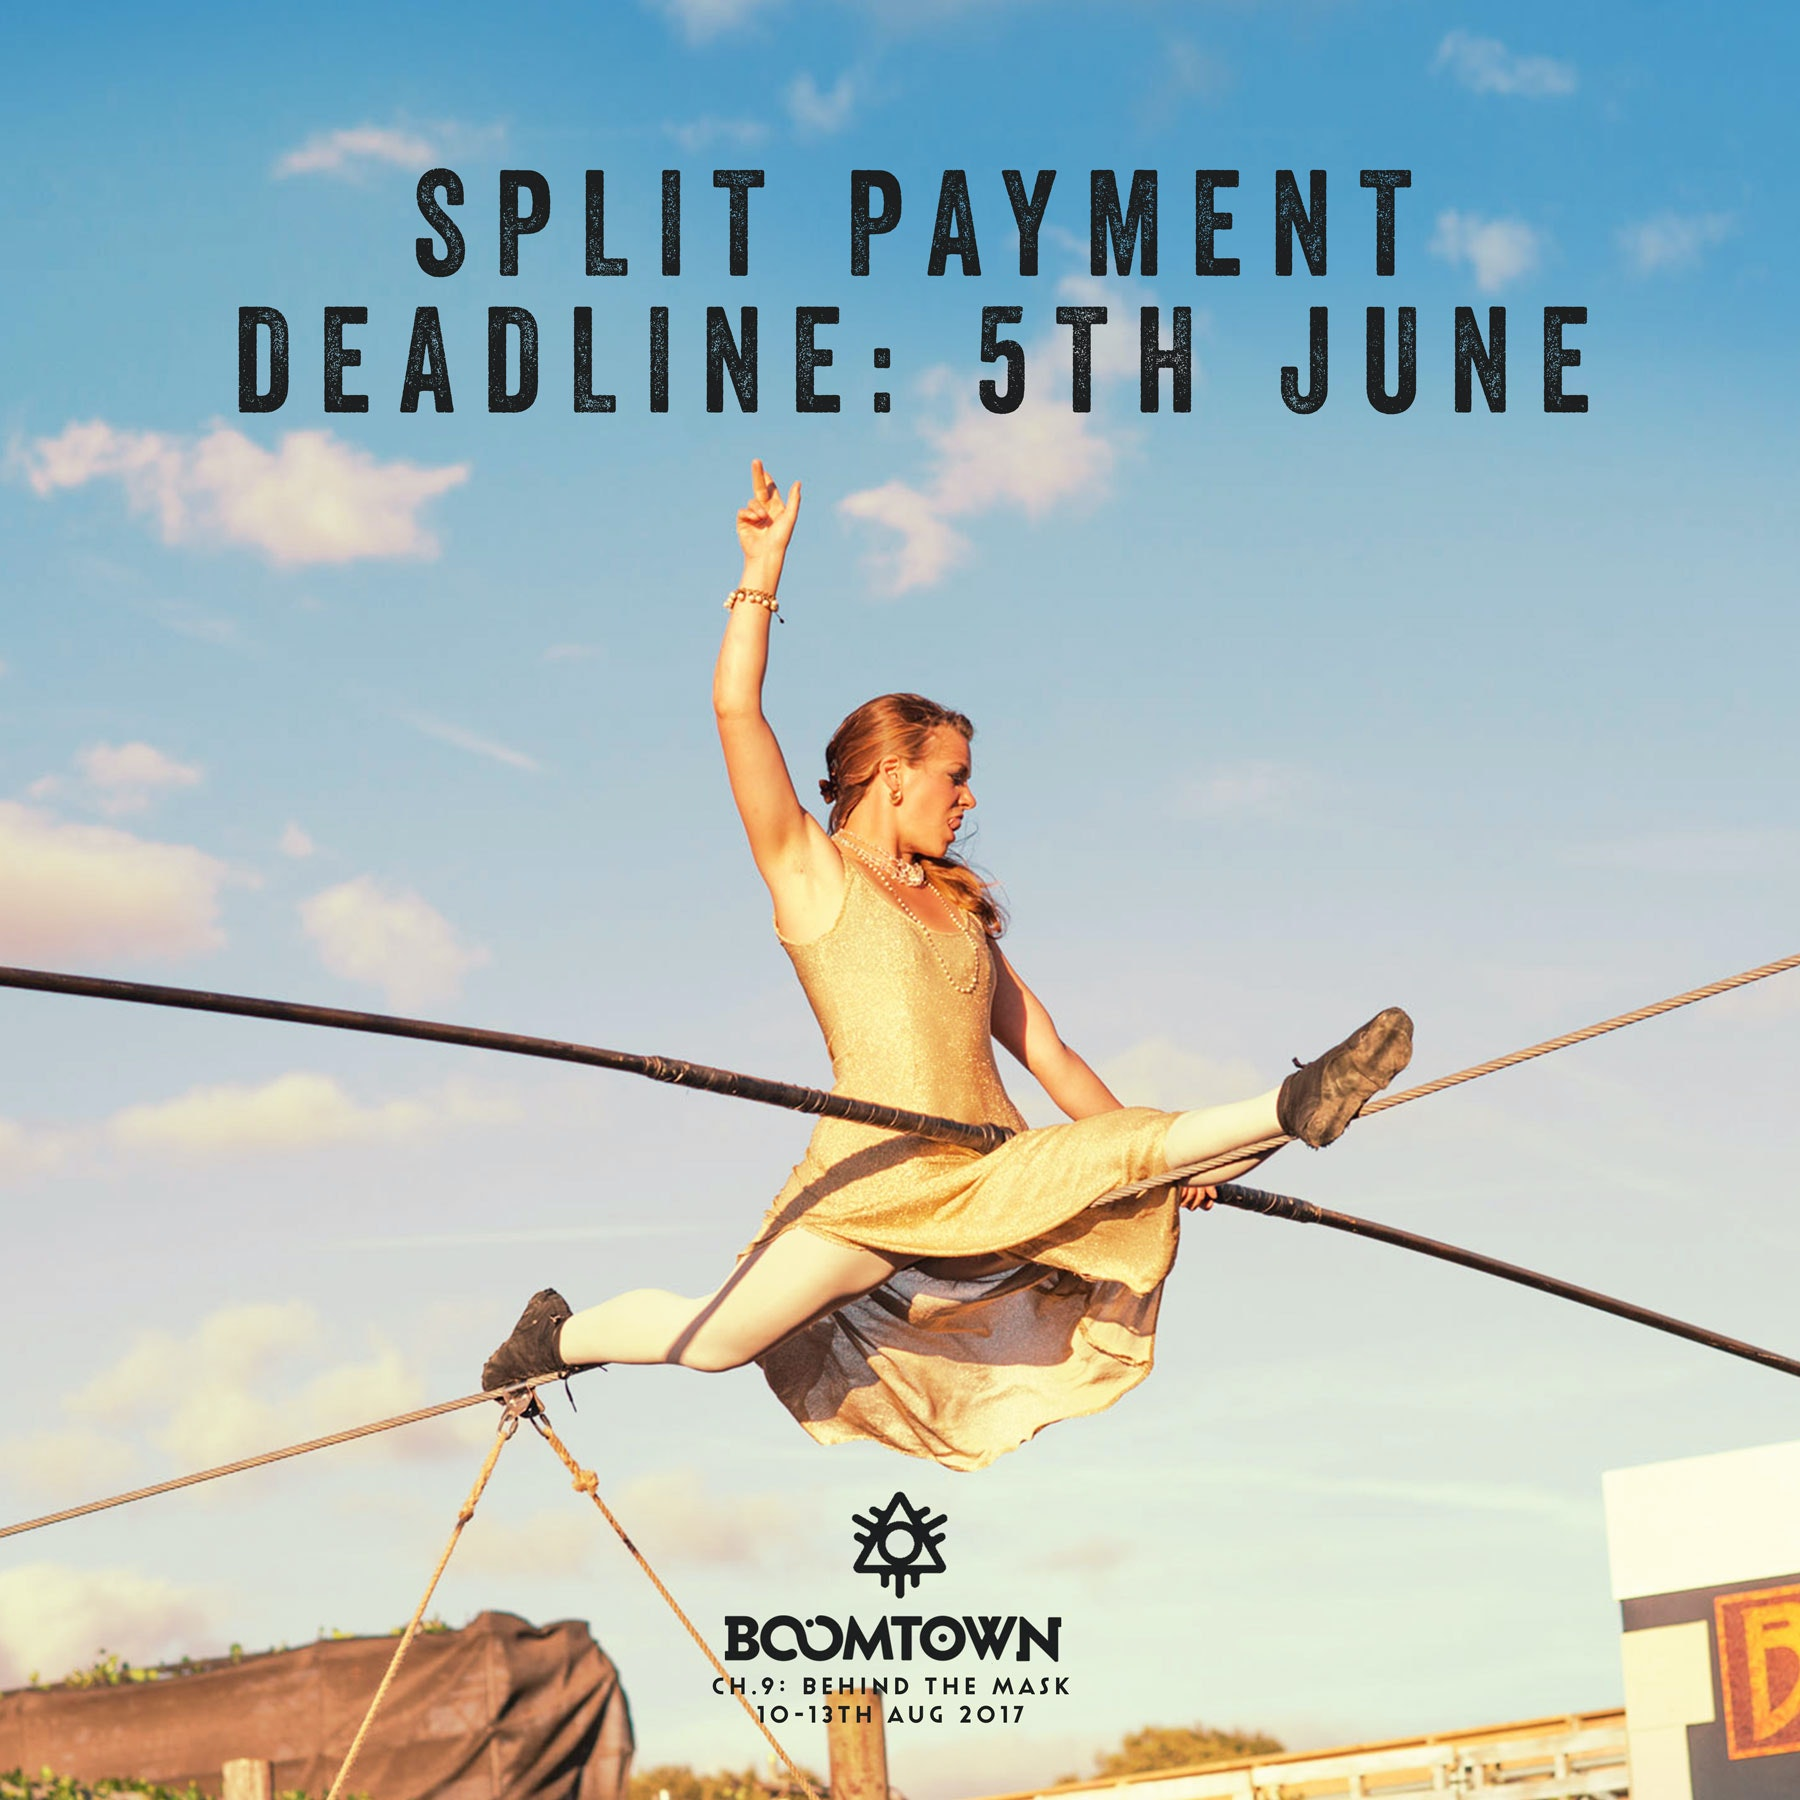 Split Payment Deadline!